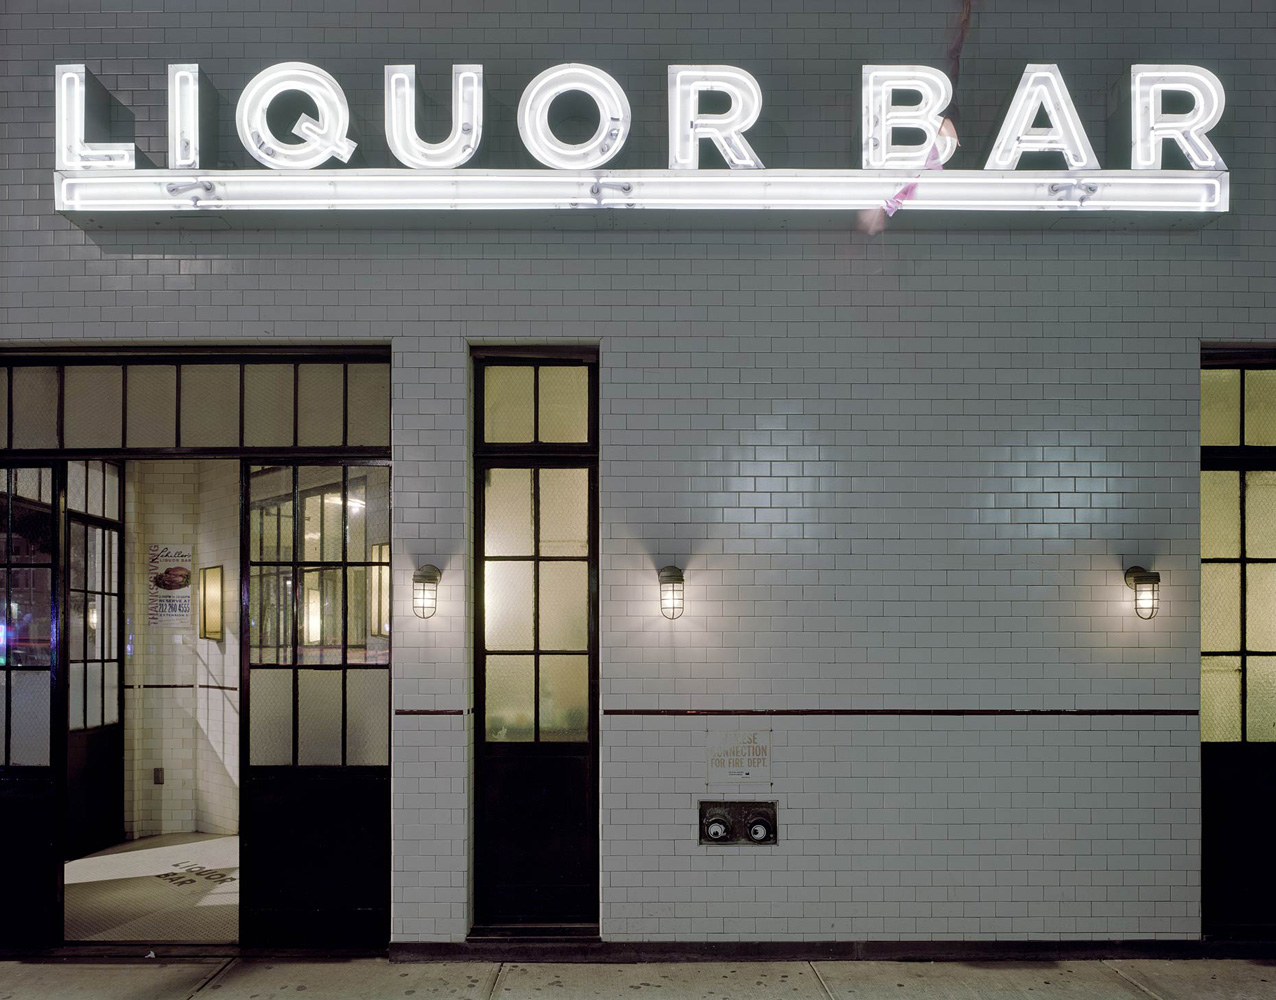 Scihller's Liquor Bar, 131 Rivington Street, Lower East Side, New York, 2005-2007, by David Leventi. Print on Dibond of bar's exterior at night.